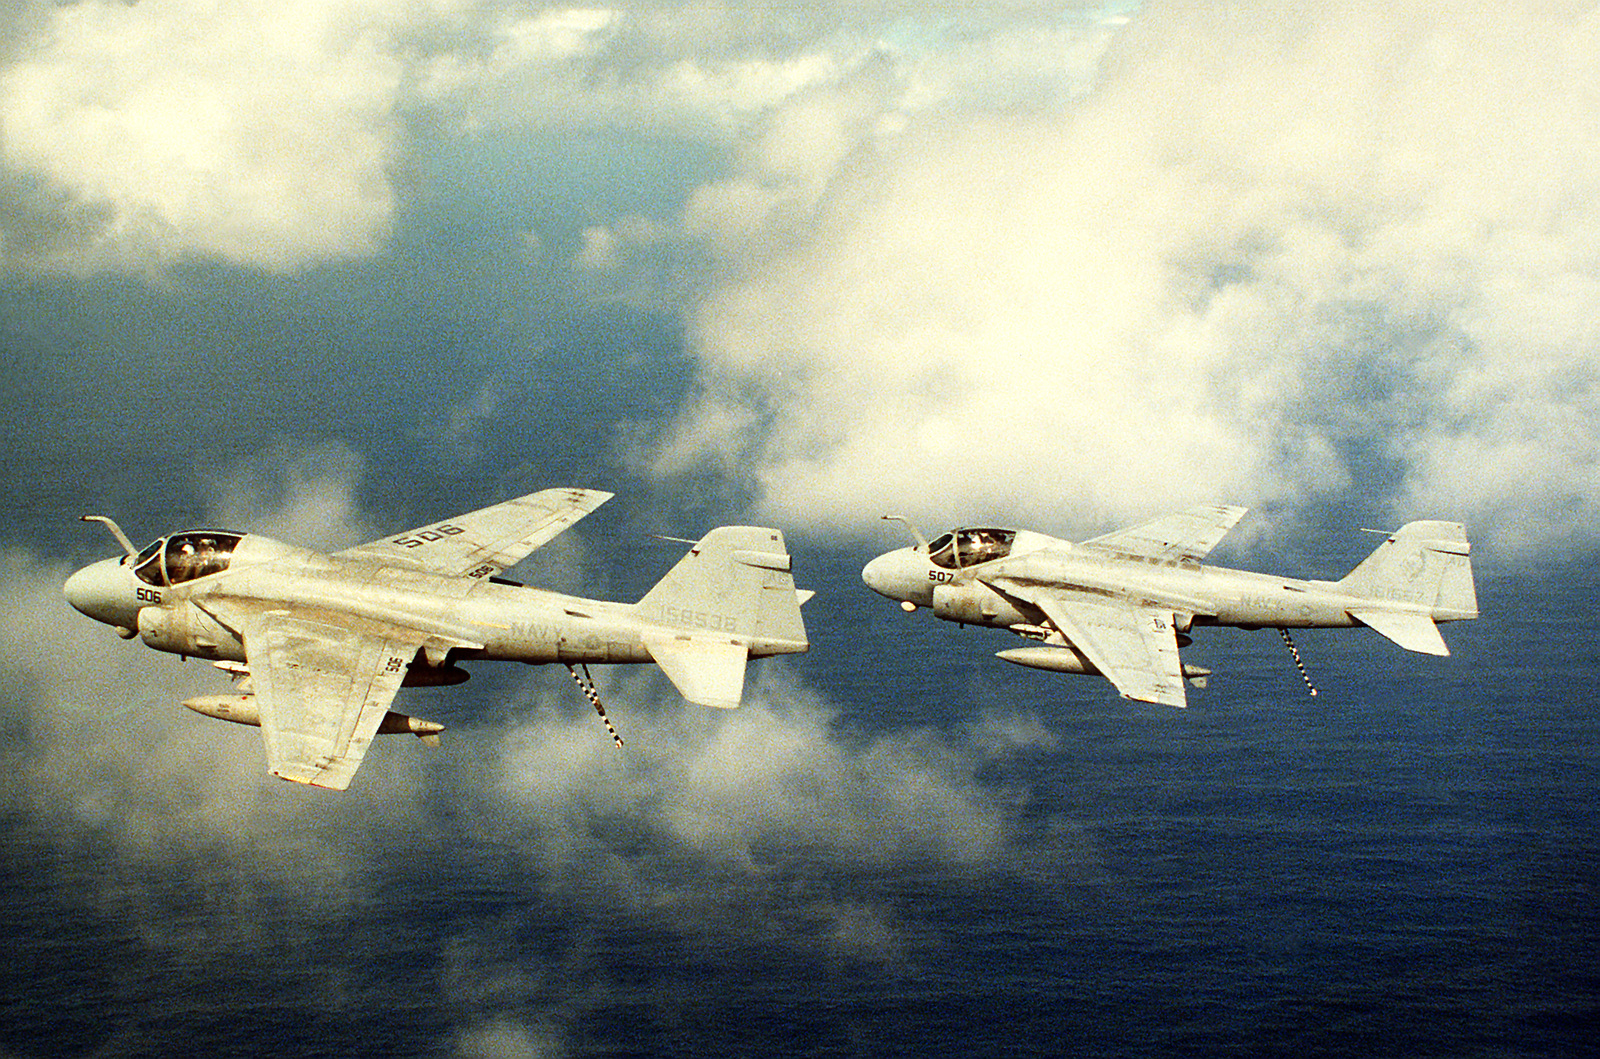 An air-to-air left side view of two A-6E Intruder aircraft flying in formation